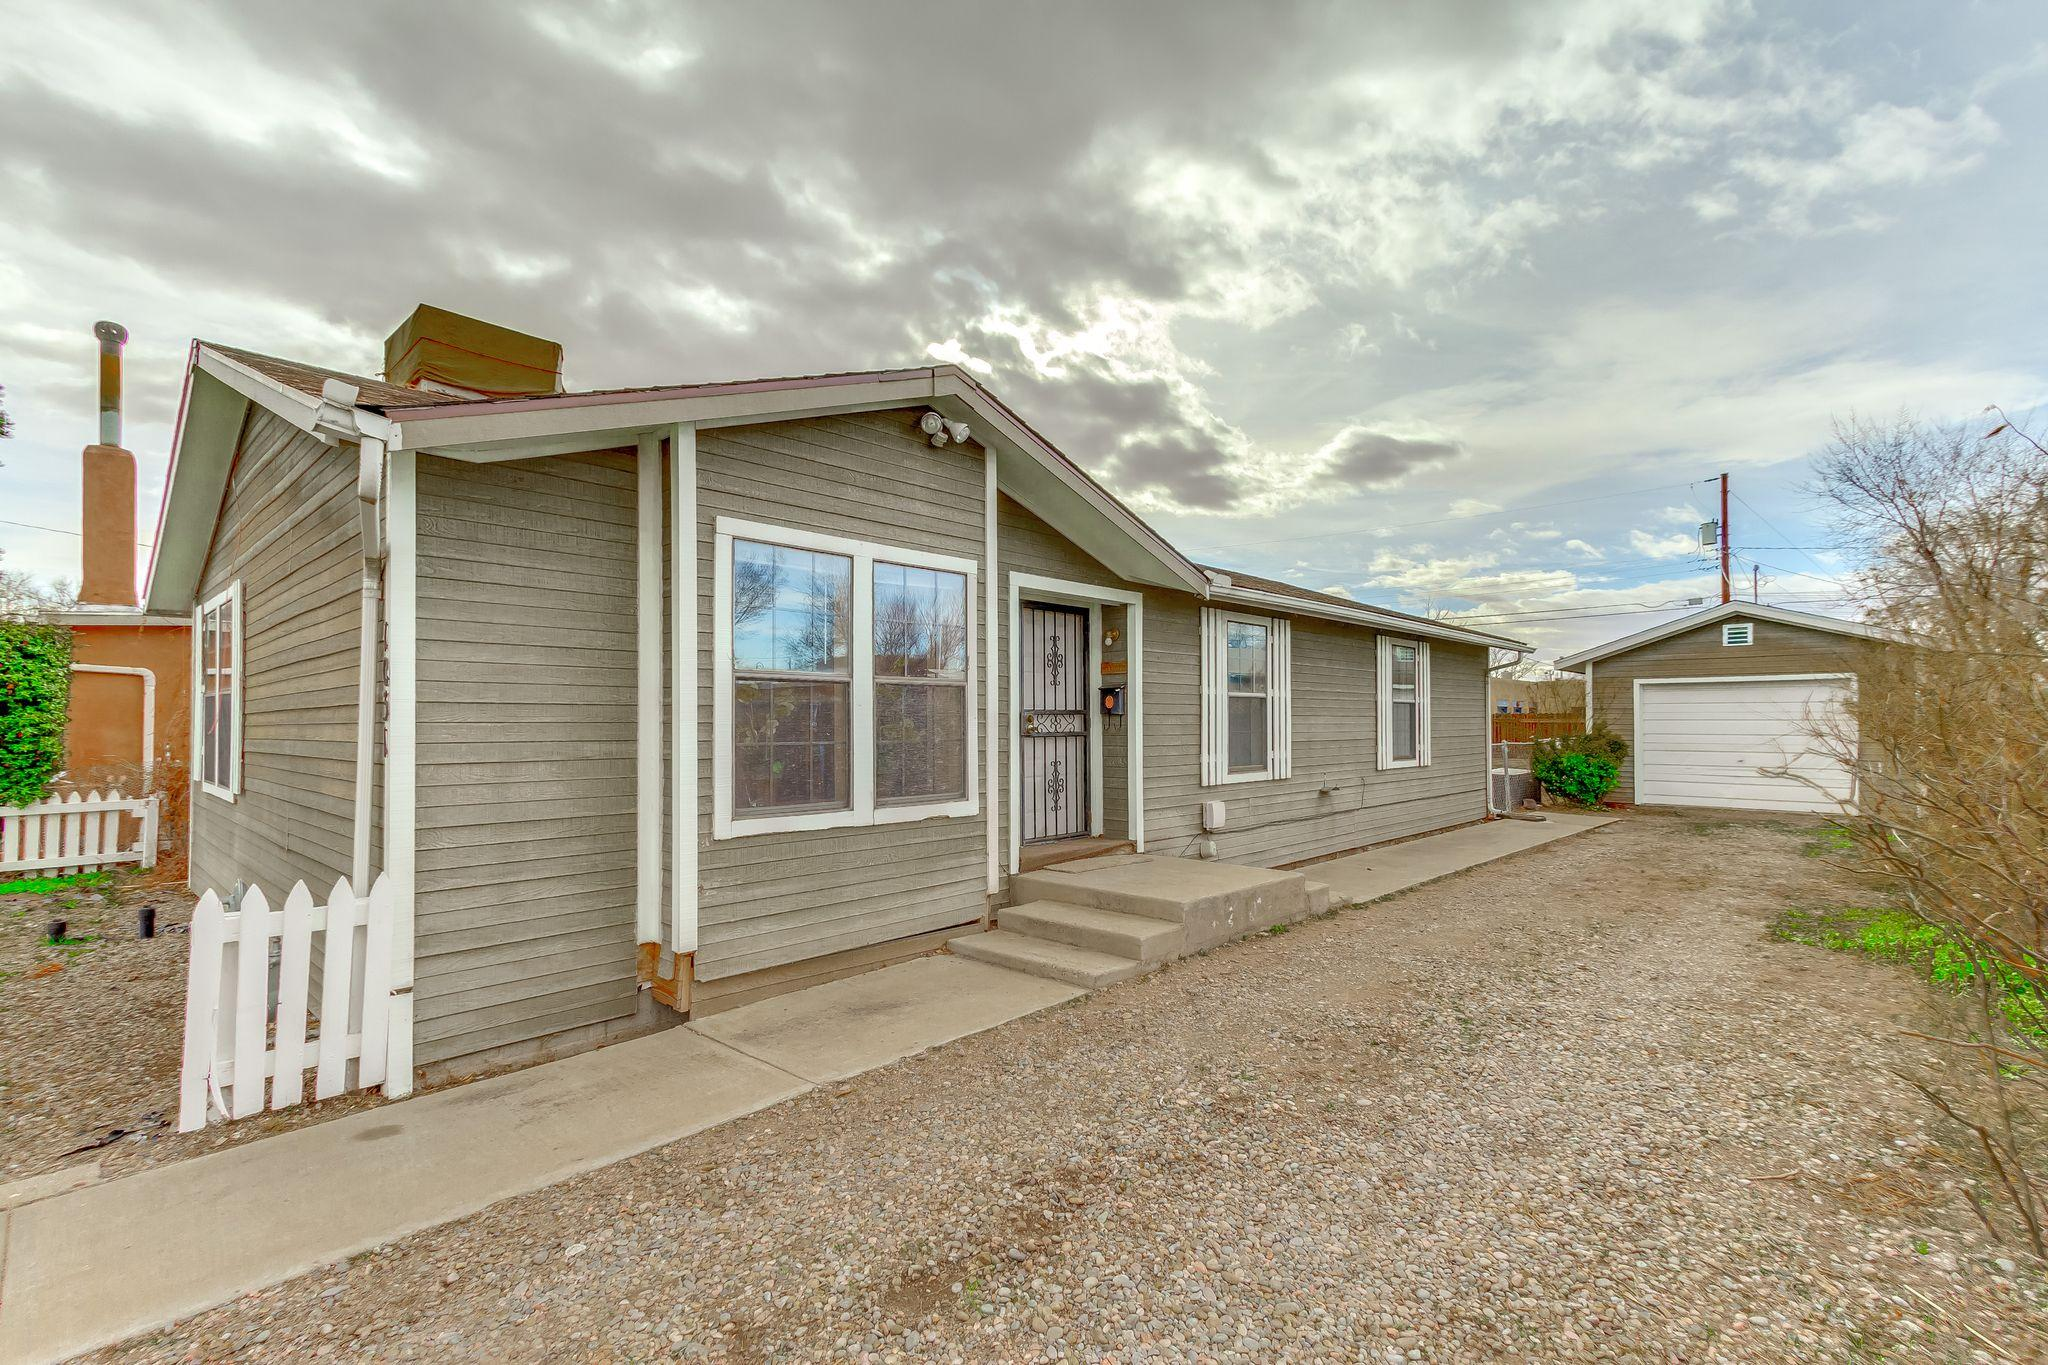 1031 Forrester Avenue NW, Albuquerque, NM 87102 - Albuquerque, NM real estate listing